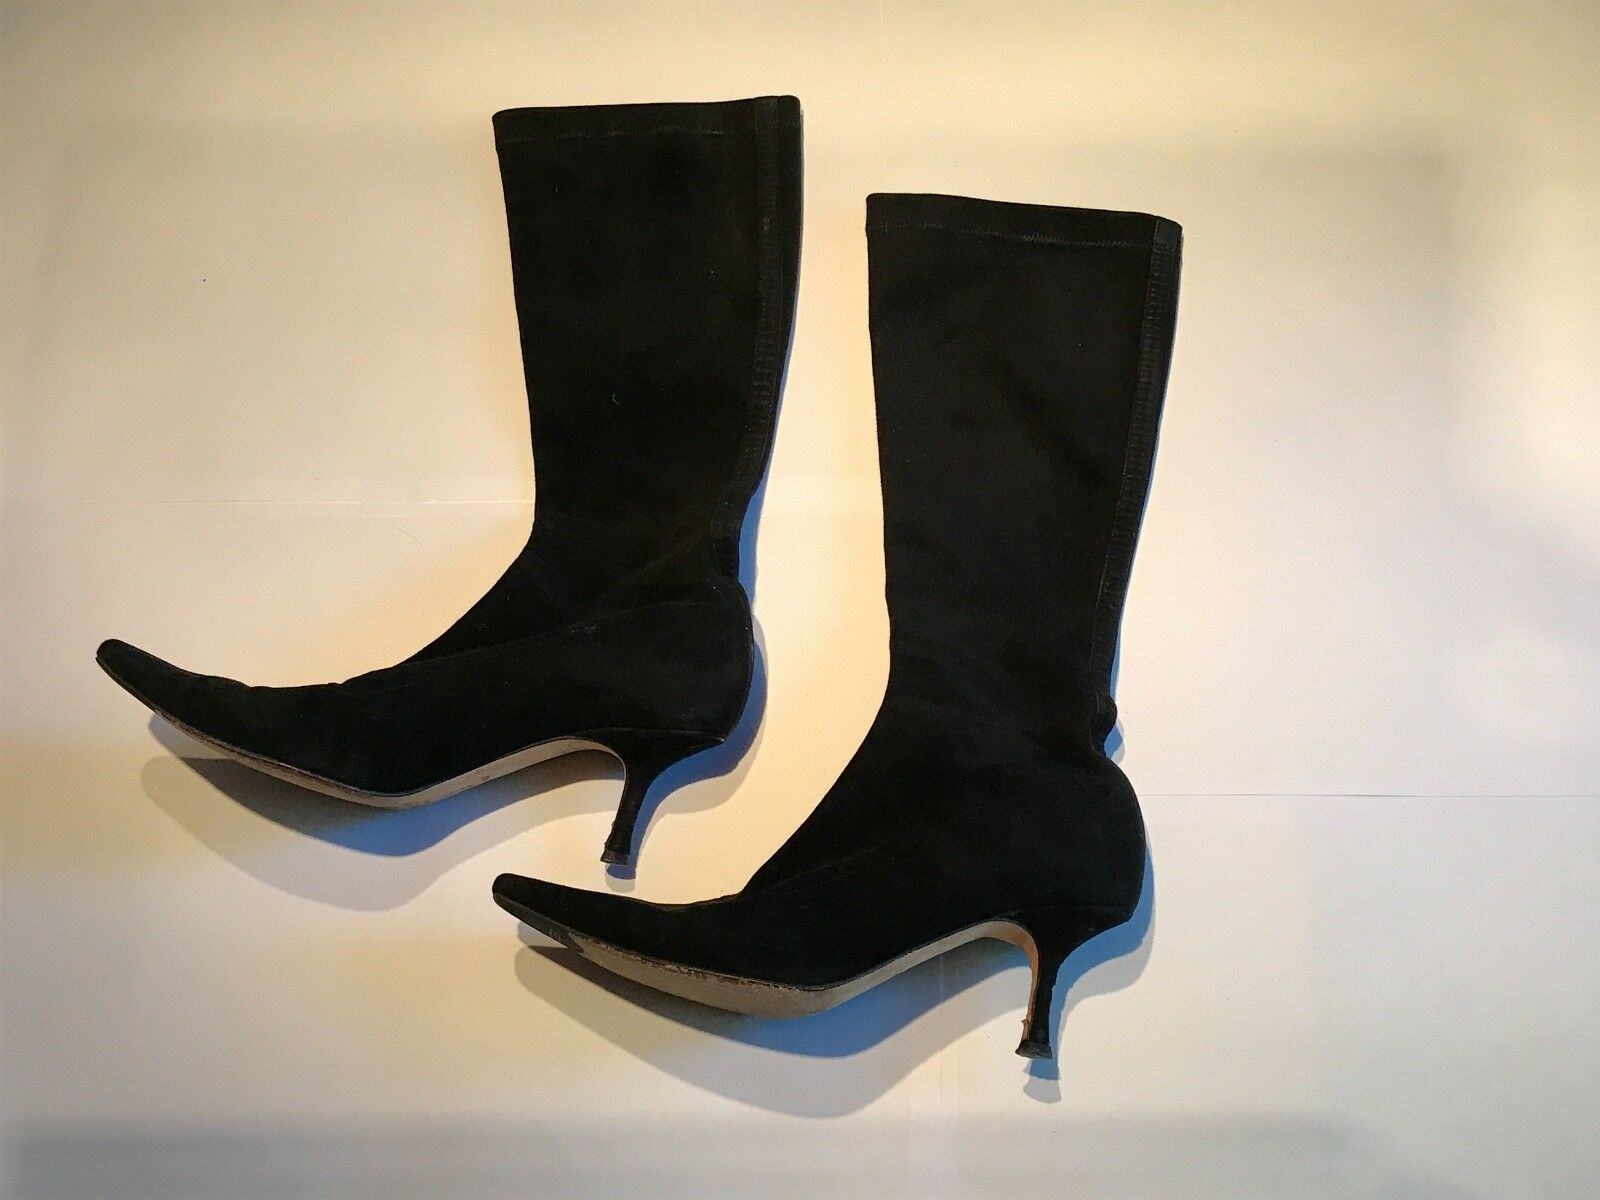 JIMMY CHOO BLACK BLACK BLACK SUEDE KNEE HIGH KITTEN HEEL POINTED TOE PULL ON BOOTS 37.5 7.5 000ce2